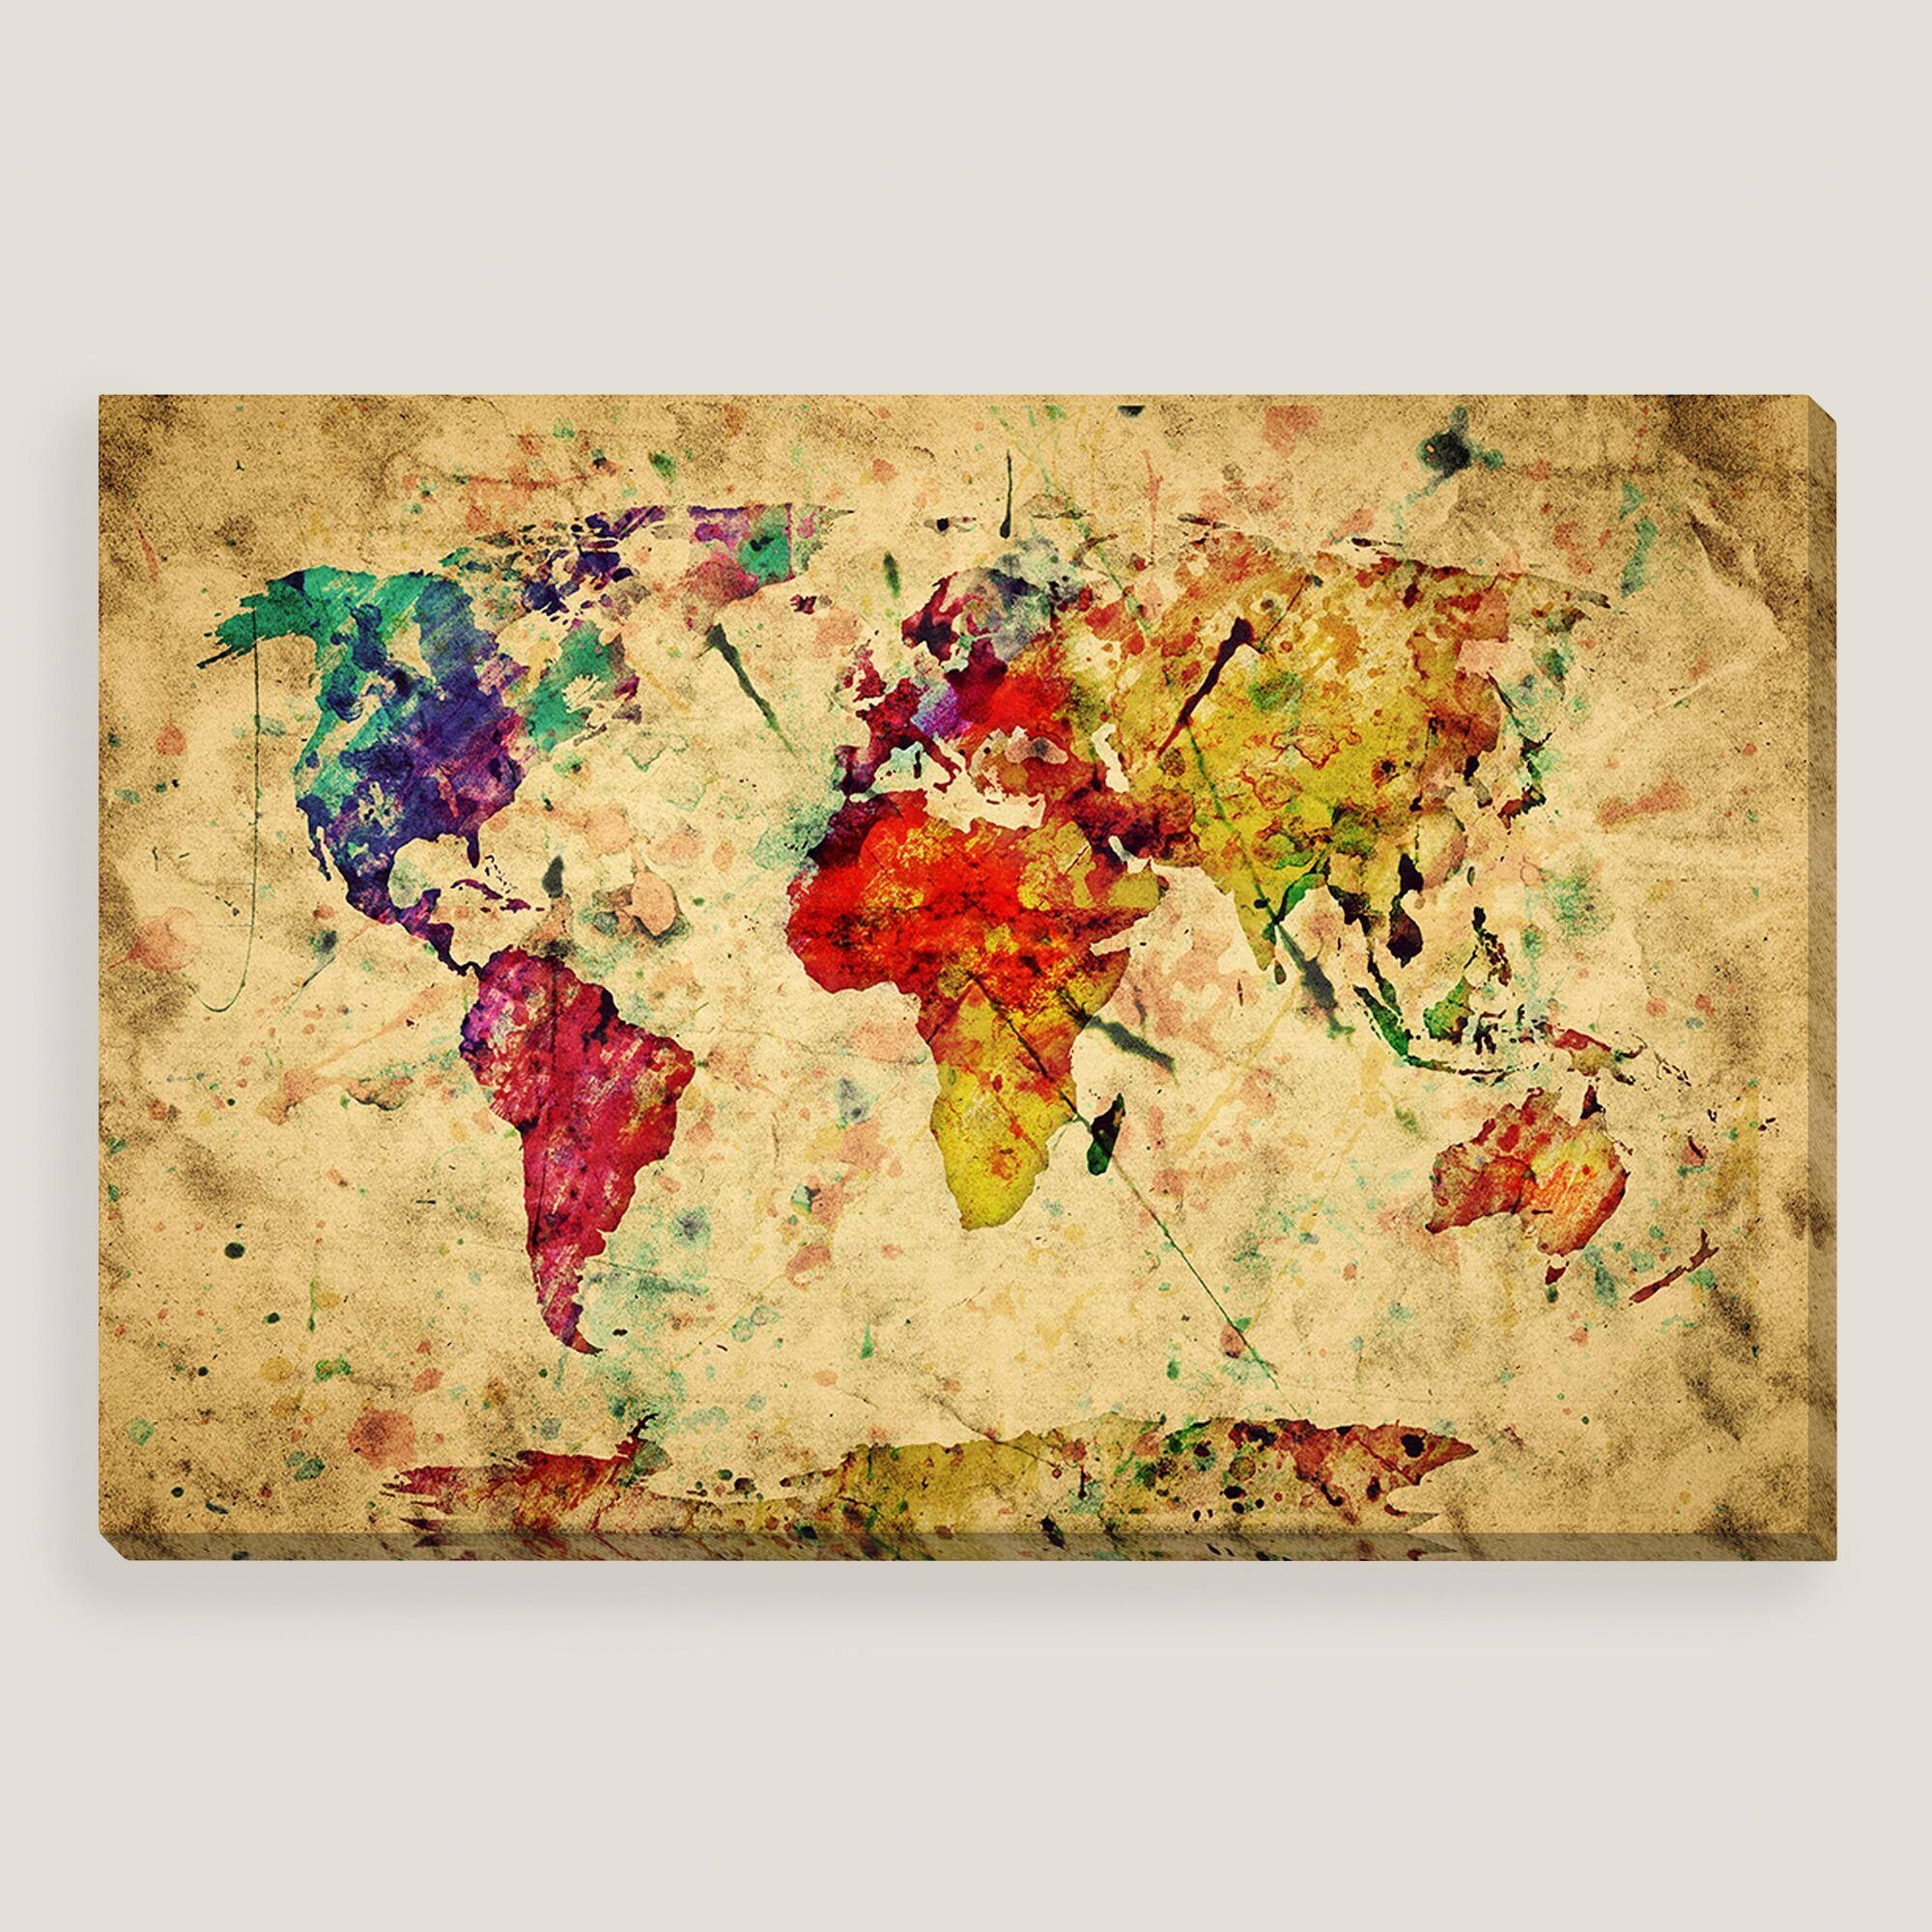 Wall Art Design Ideas: Modern Painting Vintage World Map Wall Art In Most Recently Released Old World Map Wall Art (View 15 of 20)